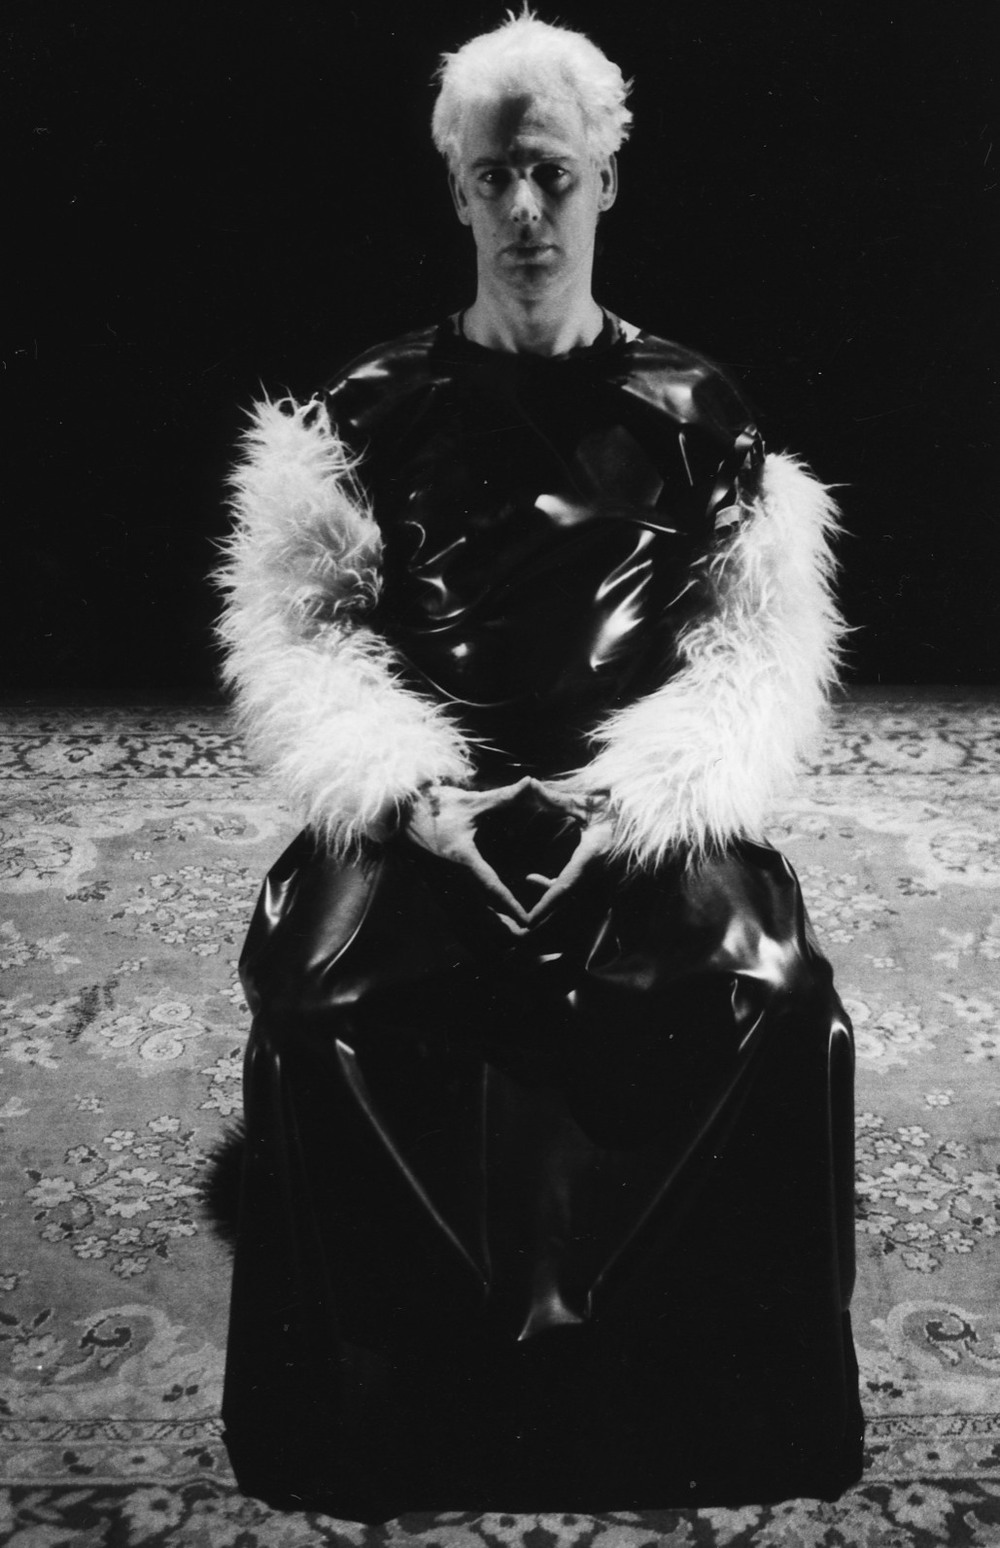 Charlie Meyrick in costume designed by Andrew Barker for Vessel.